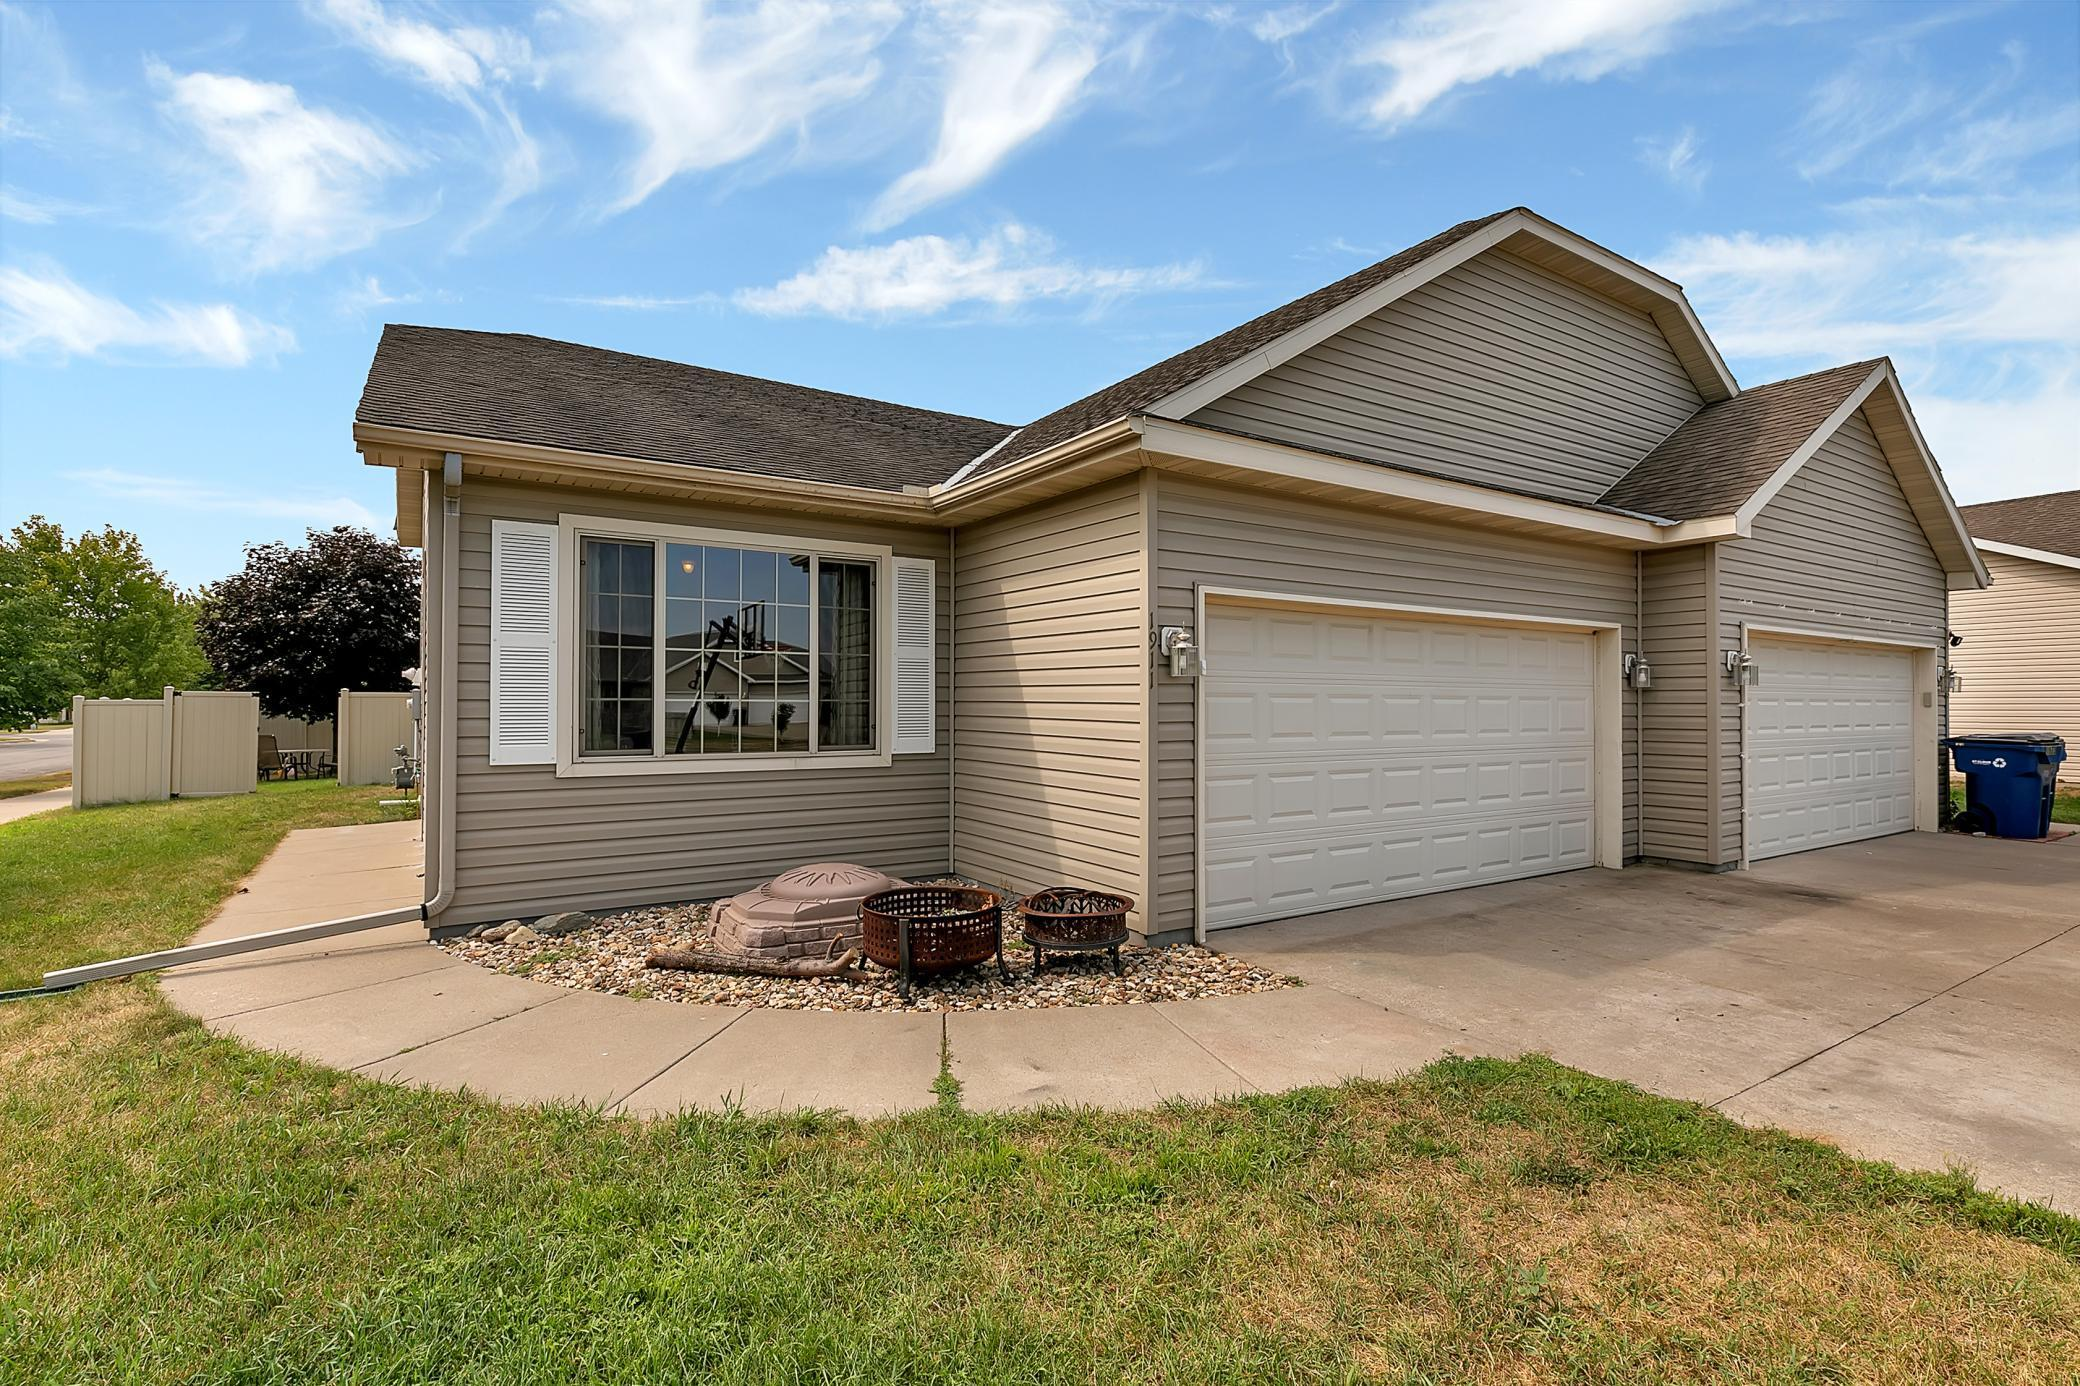 Privacy and space are abundant in this one-owner home. Fenced in yard. Large LL family room. Heated garage and plenty of parking. Deck for entertaining. Fully finished with some updates. LL is wired for audio/video components. Quick close available.